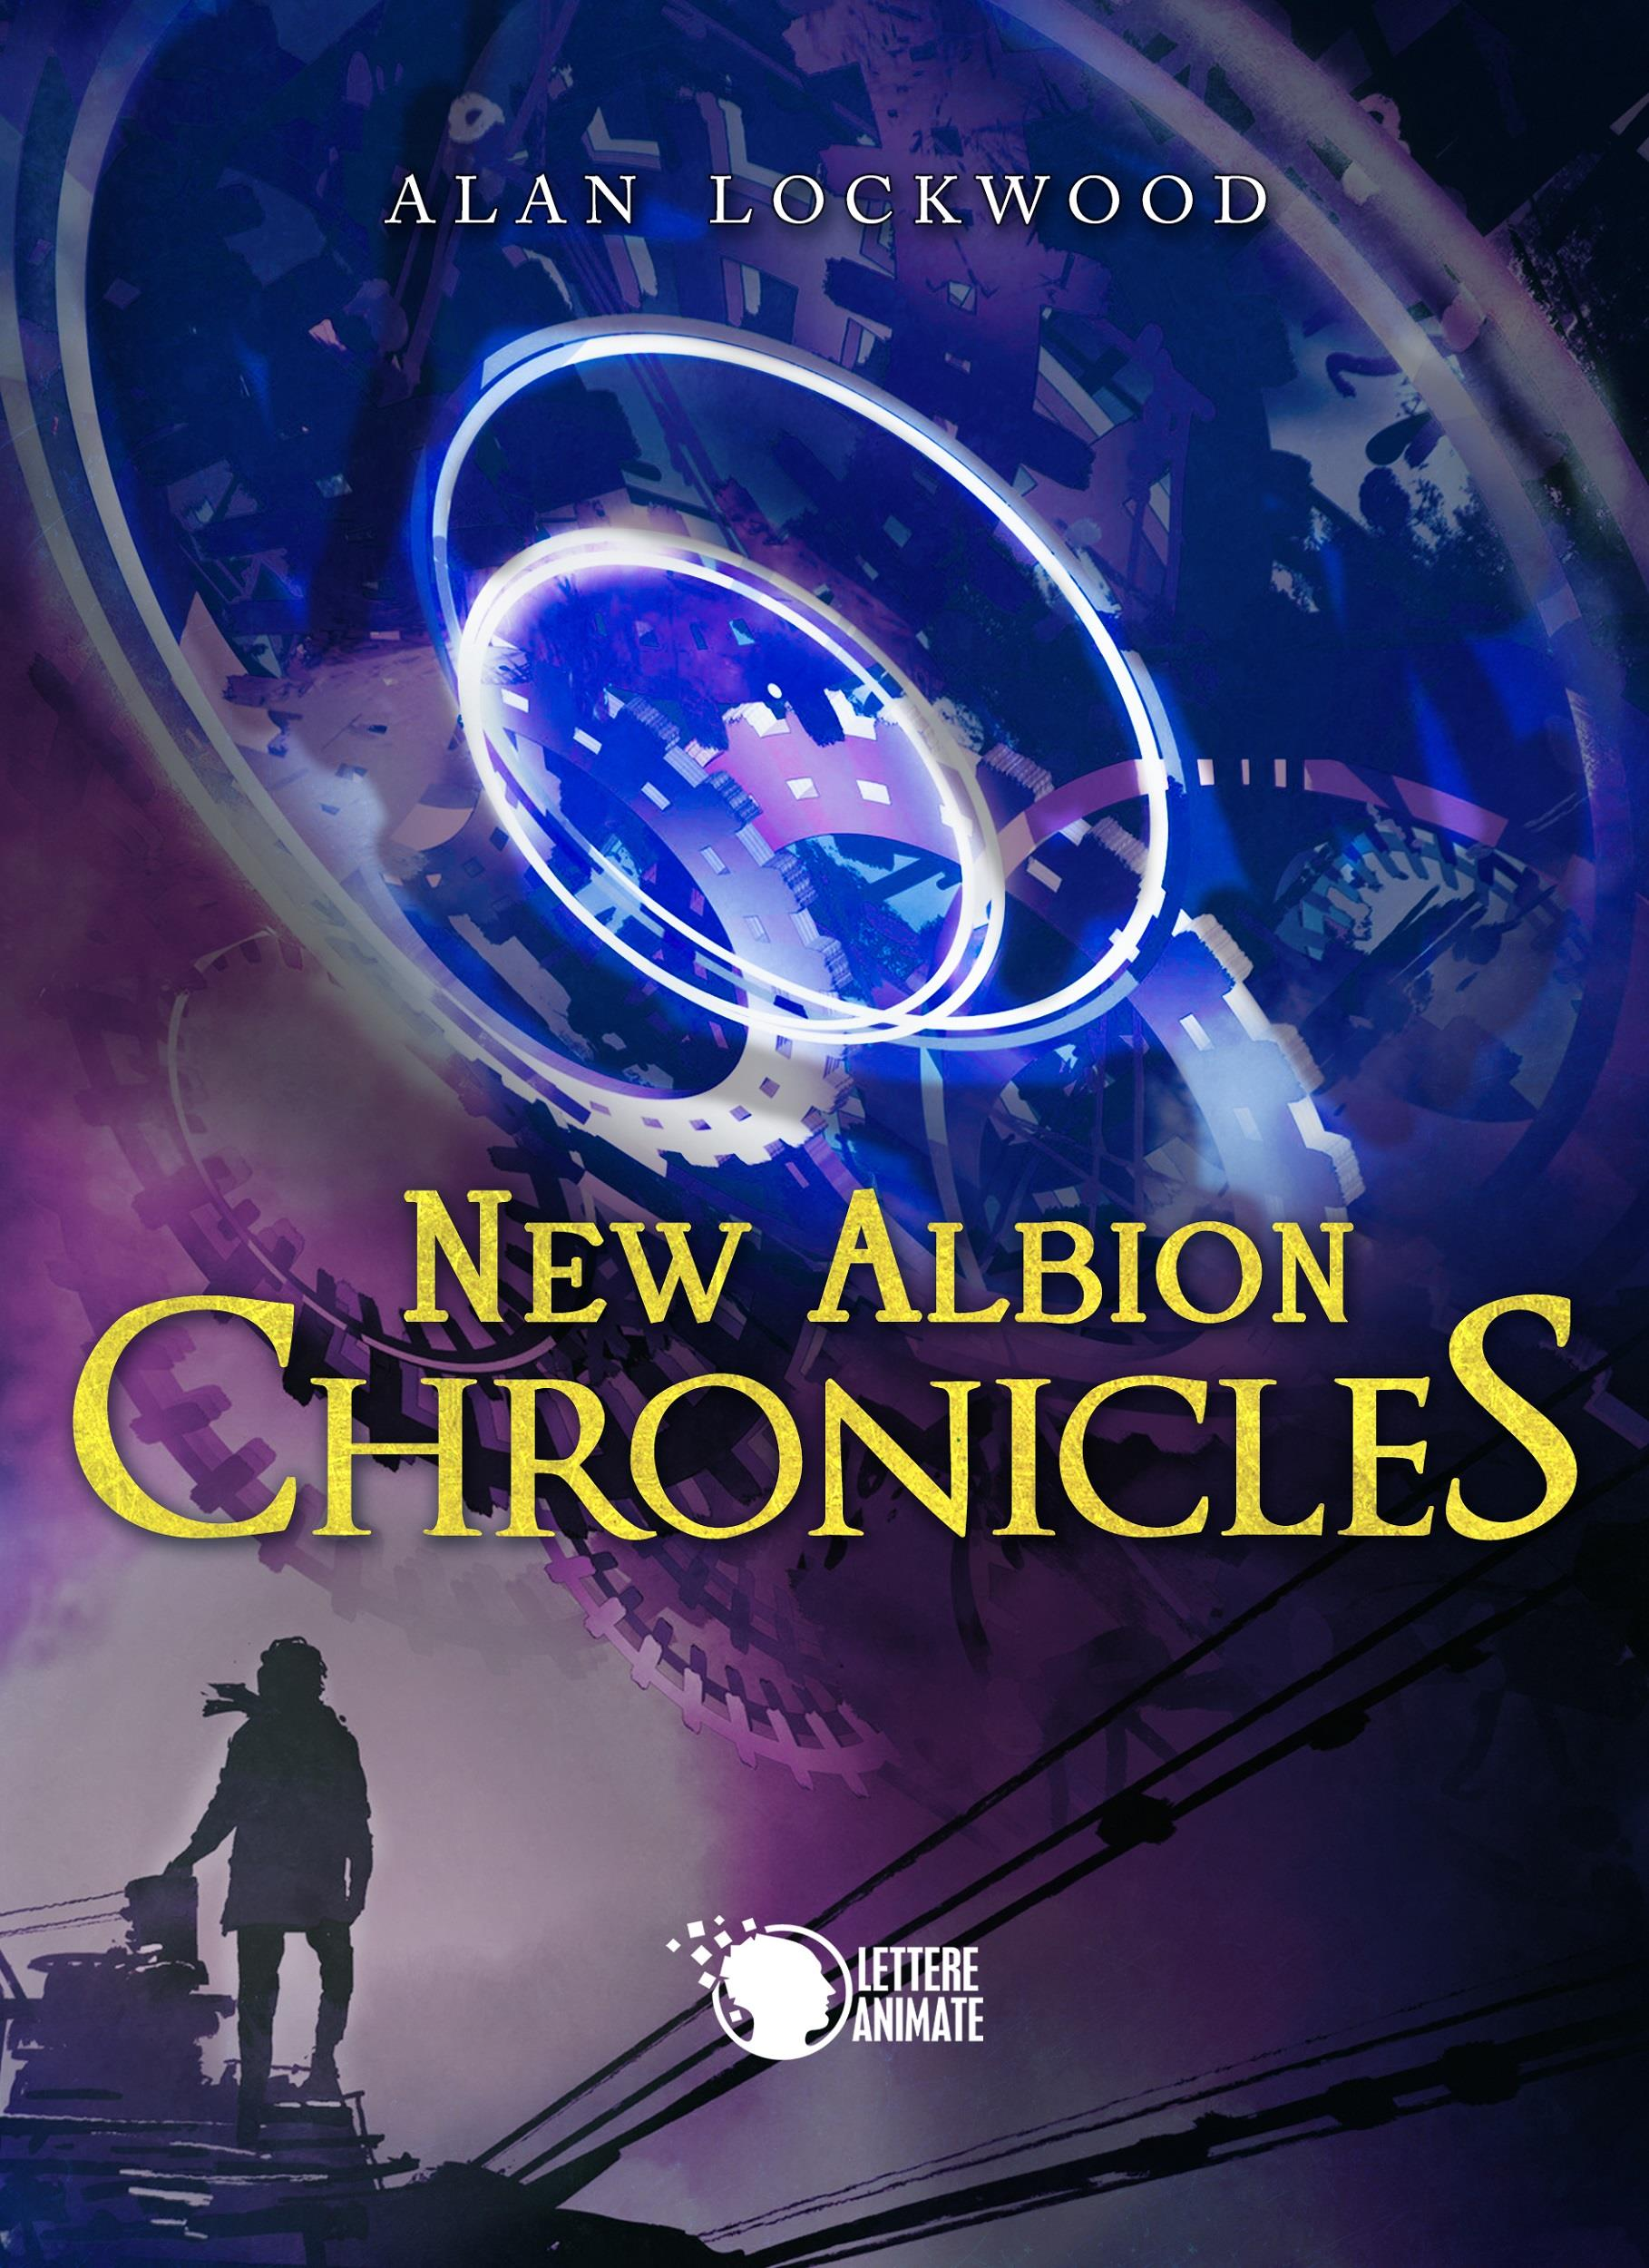 New Albion Chronicles